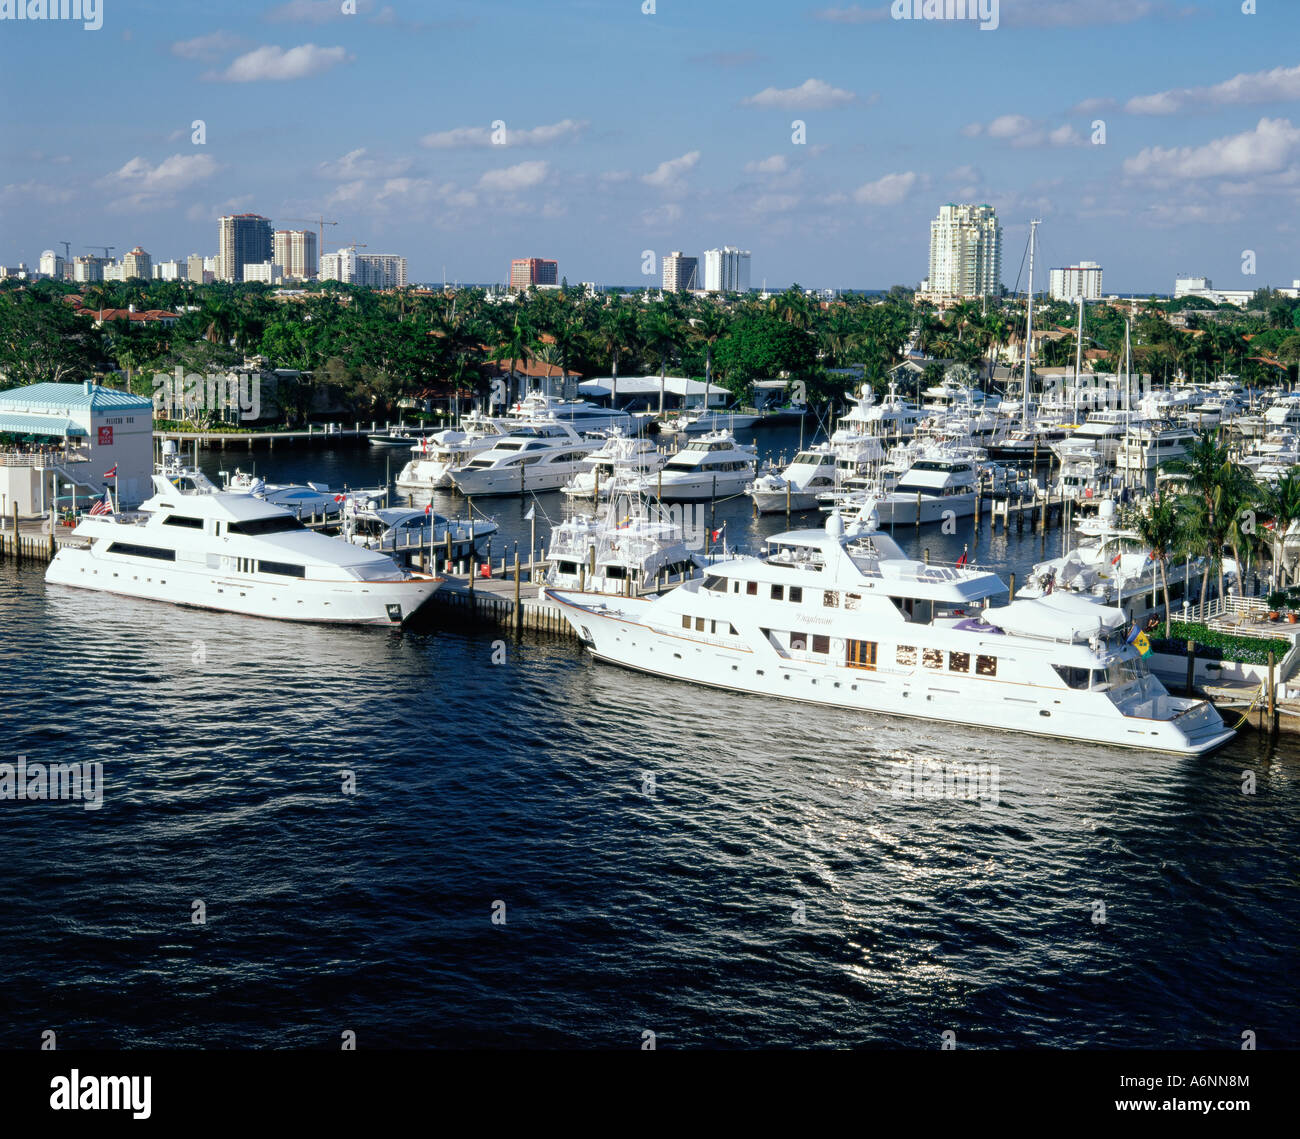 Canals In The United States : Waterways canals and lagoons fort lauderdale florida